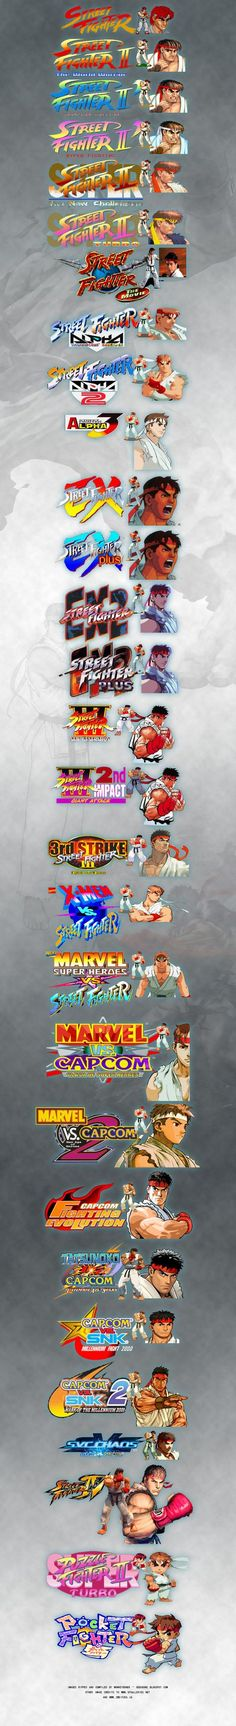 ryu_street_fighter-evolution-by-game.jpg (800×5852)